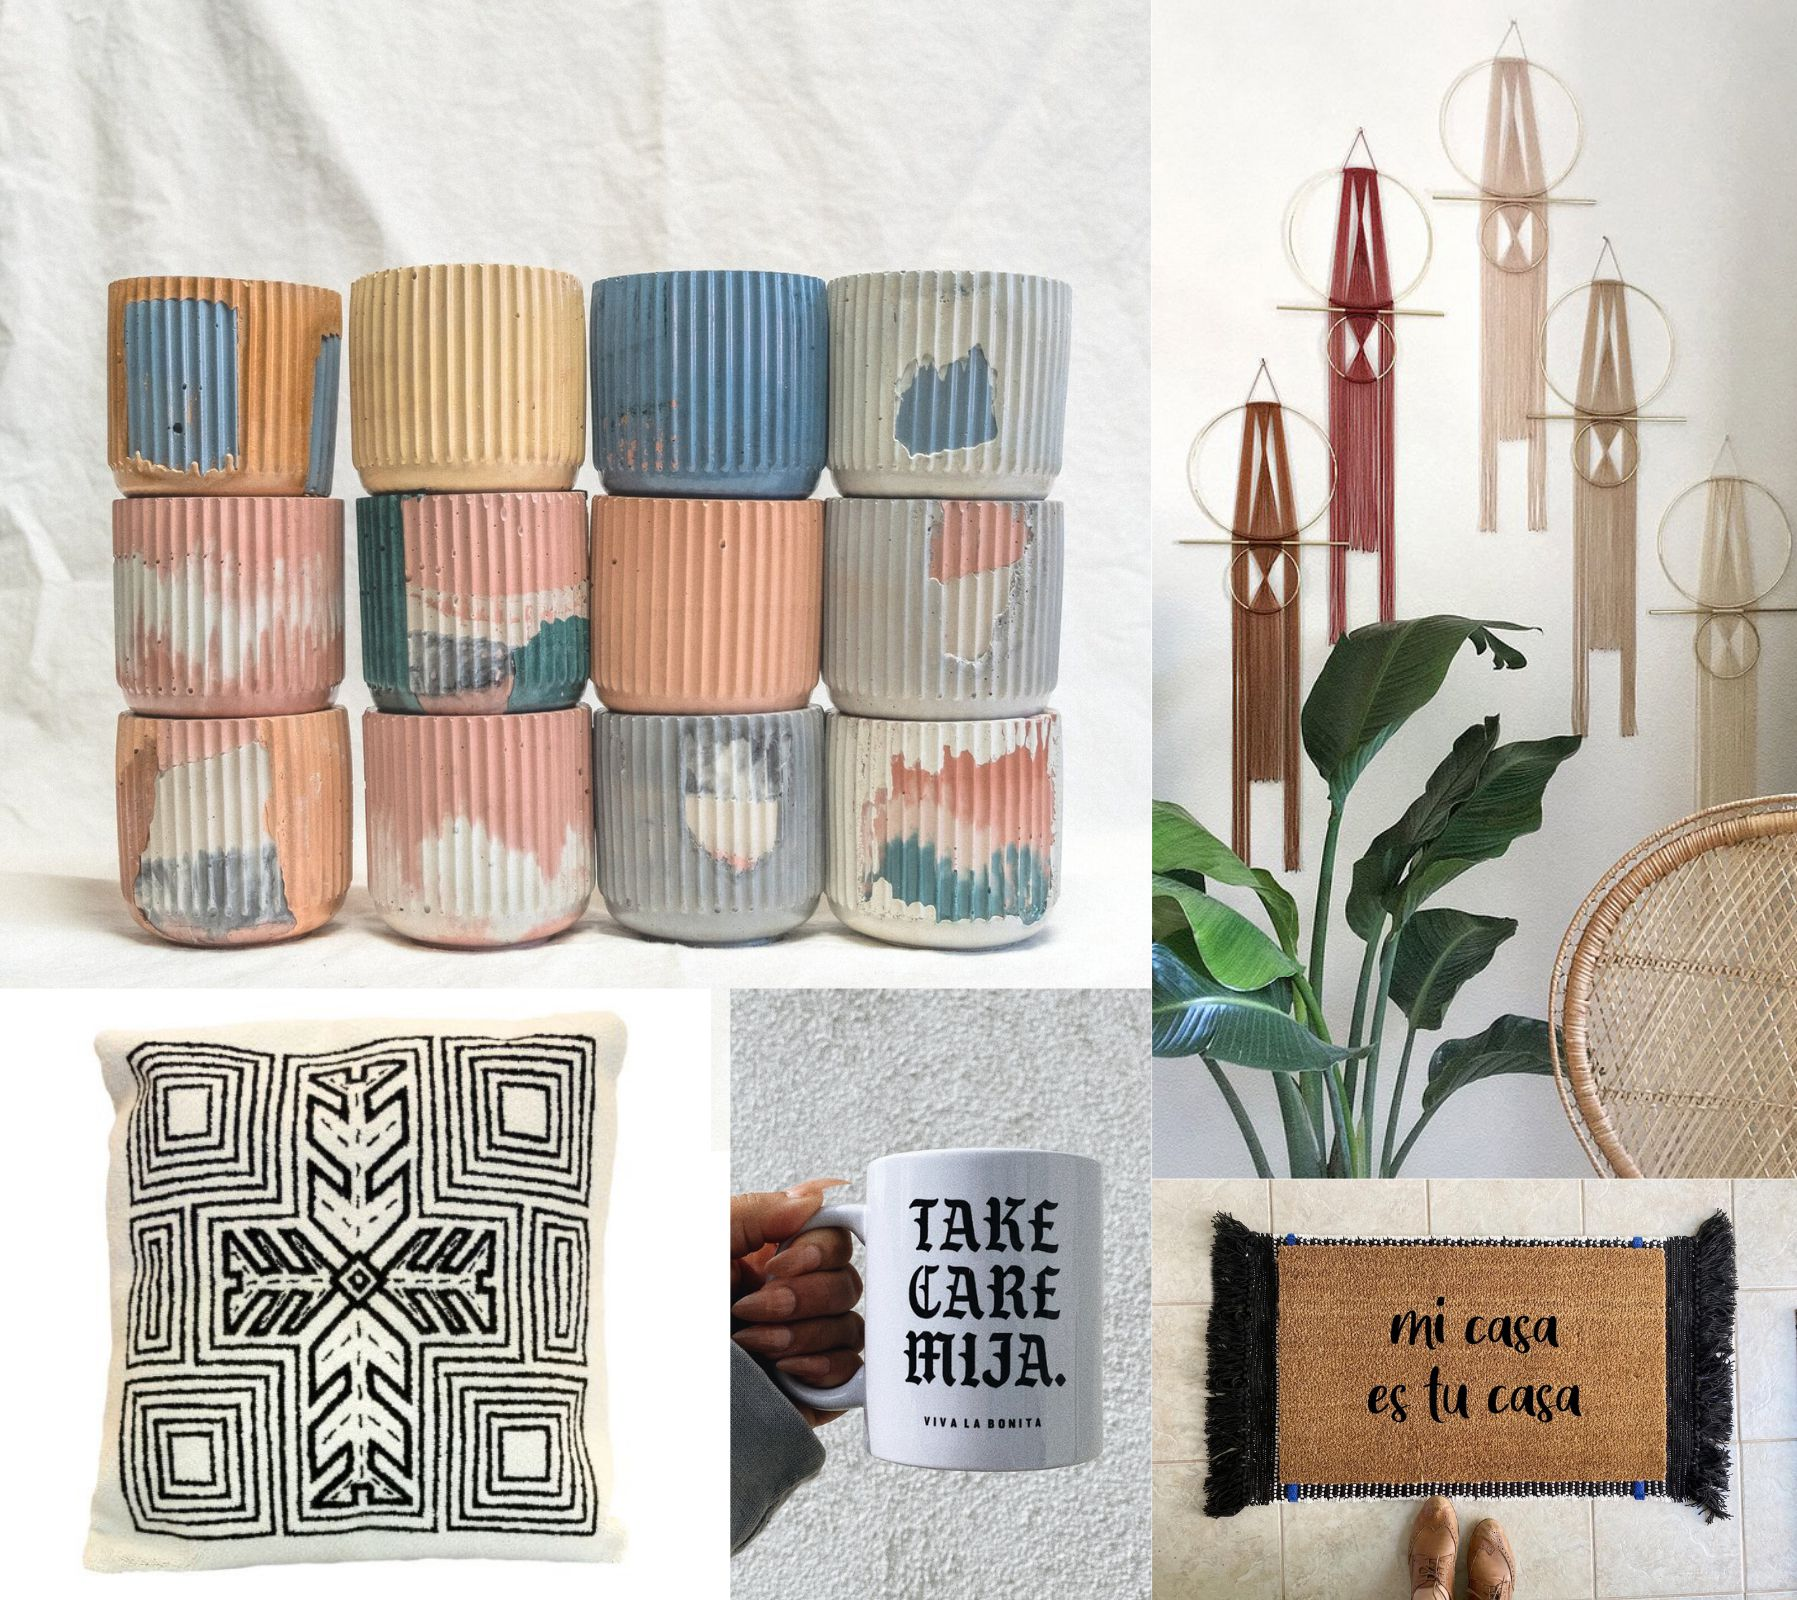 The 19 Best Home Decor Gifts From Latinx-Owned Businesses & Brands